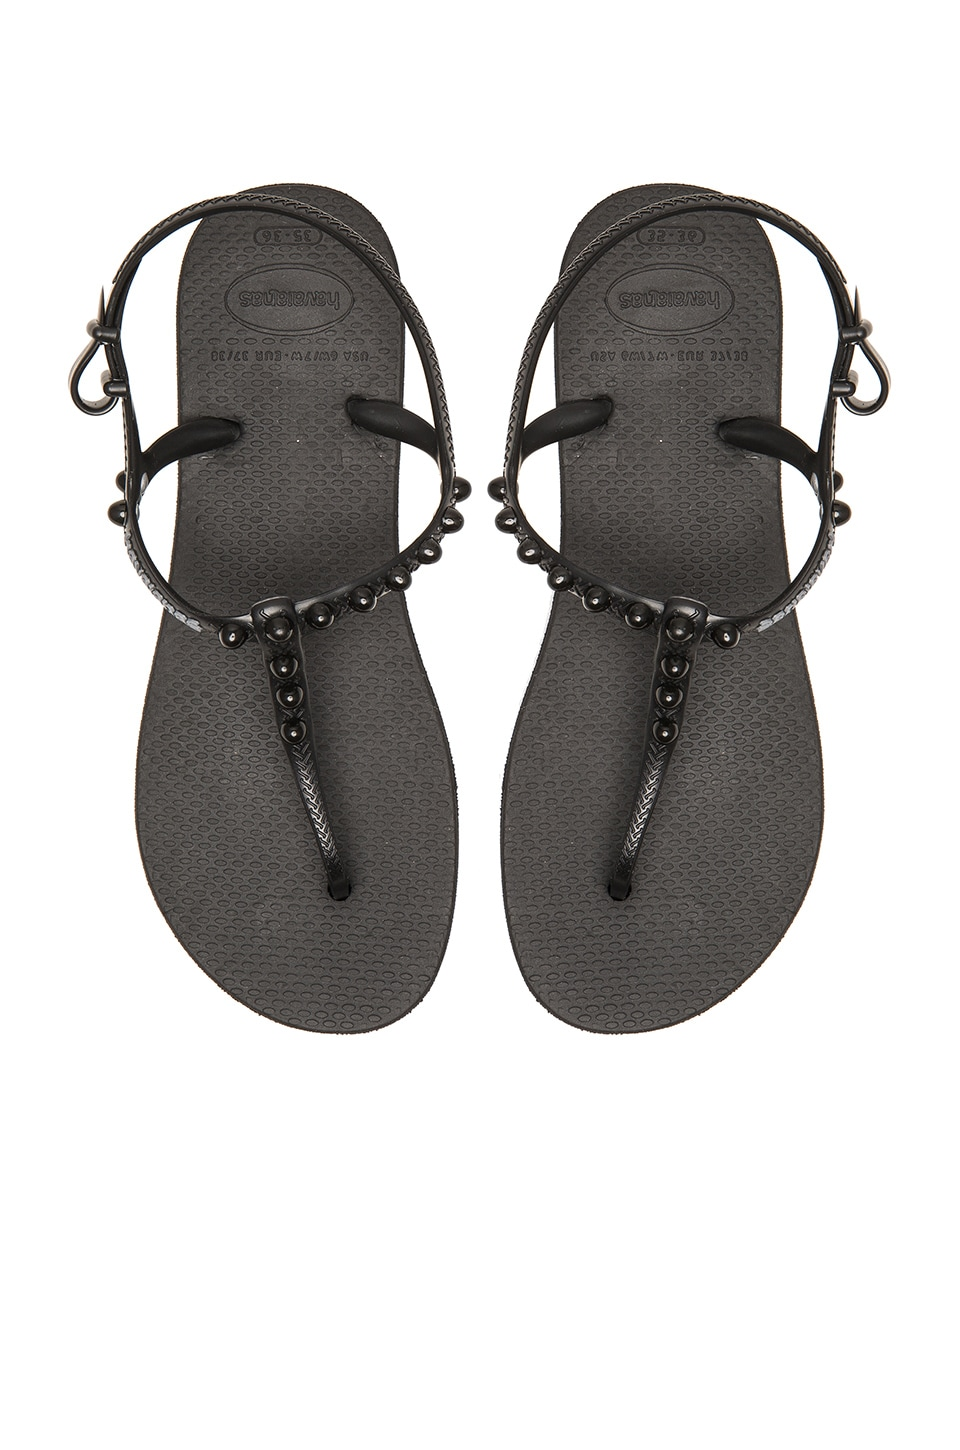 Havaianas Freedom Candy Flip Flop in Black